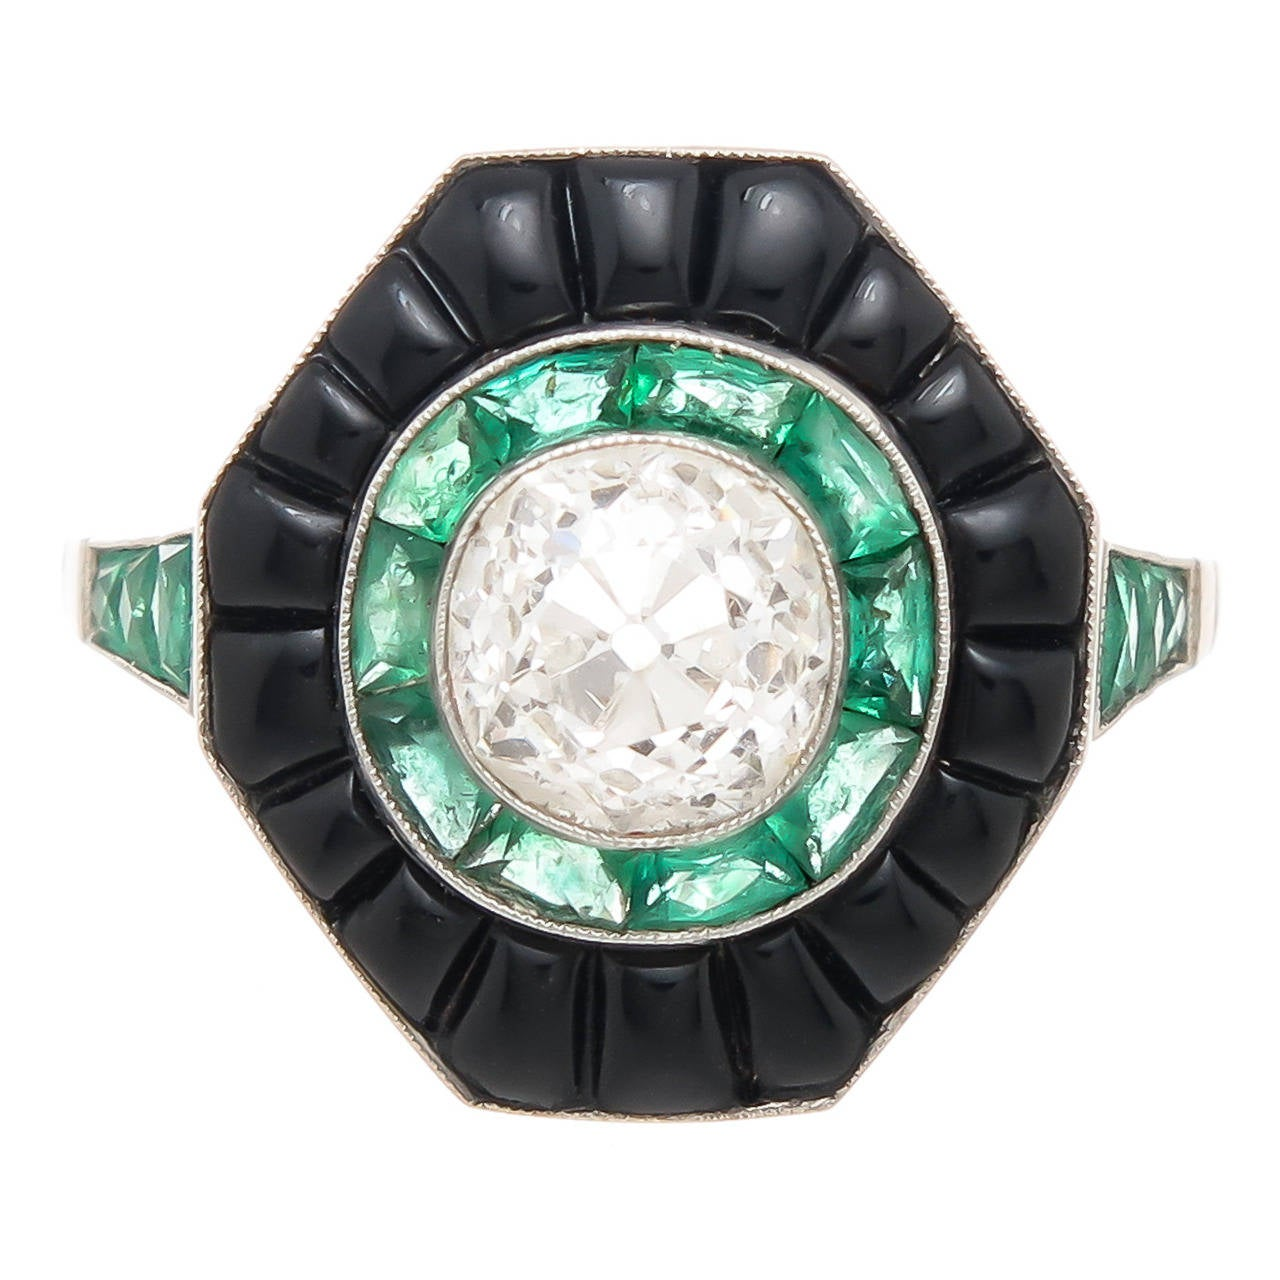 cushion cut emerald onyx target ring at 1stdibs